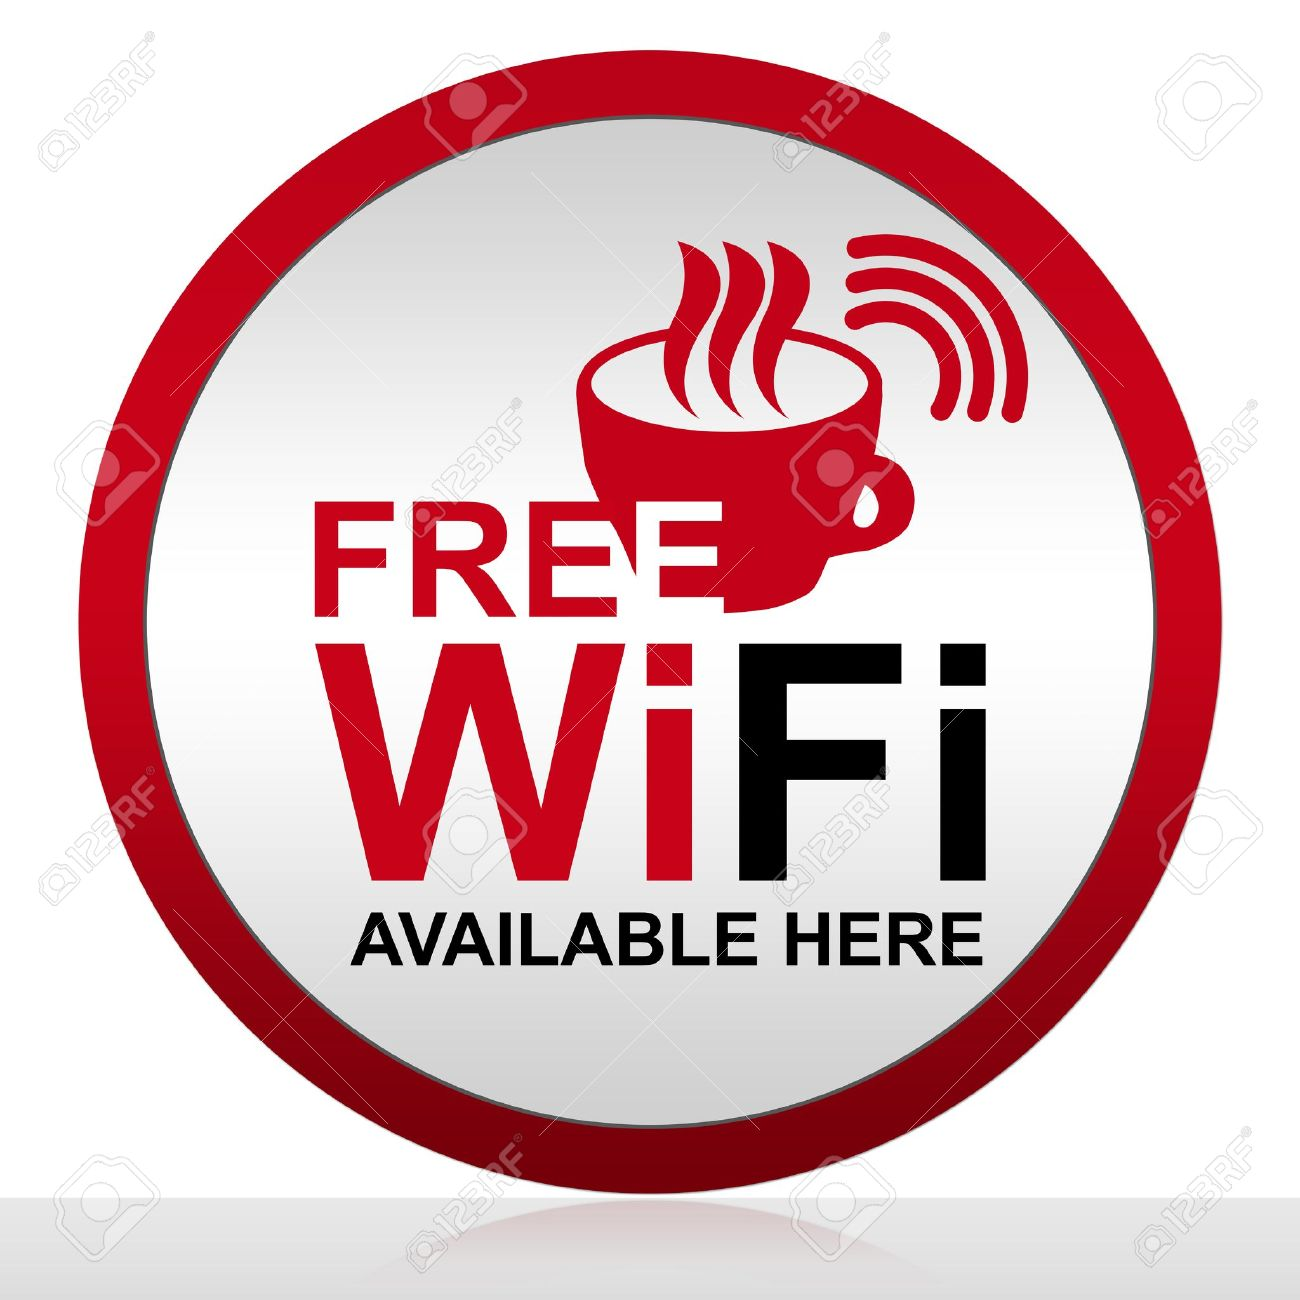 Circle Free Wifi Available Here With Glossy Style for Coffee Shop Isolated on White Background Stock Photo - 14768273